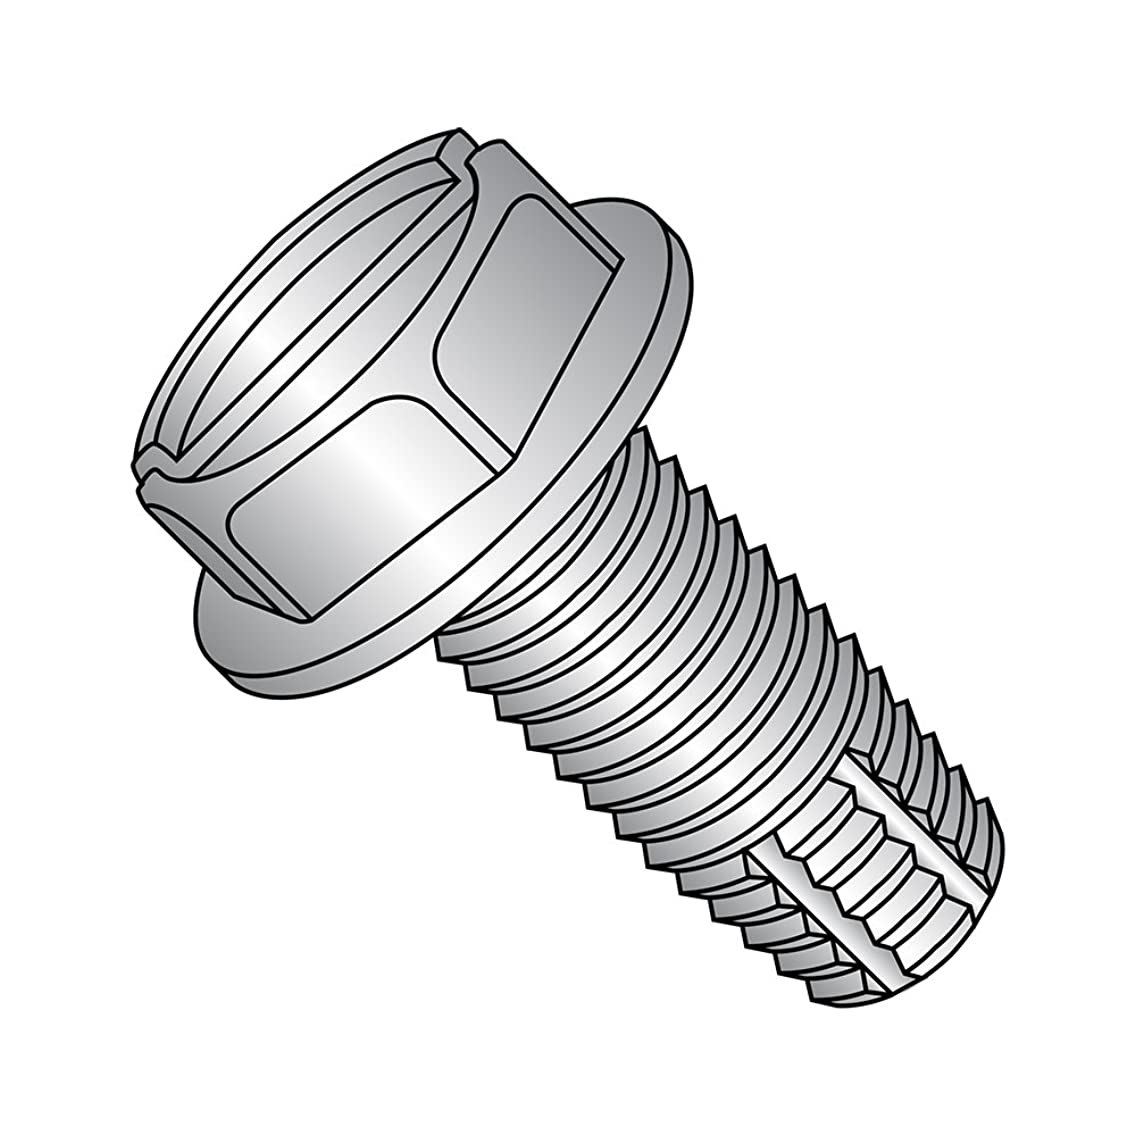 18-8 Stainless Steel Thread Cutting Screw, Plain Finish, Hex Washer Head, Slotted Drive, Type F, #8-32 Thread Size, 1/4